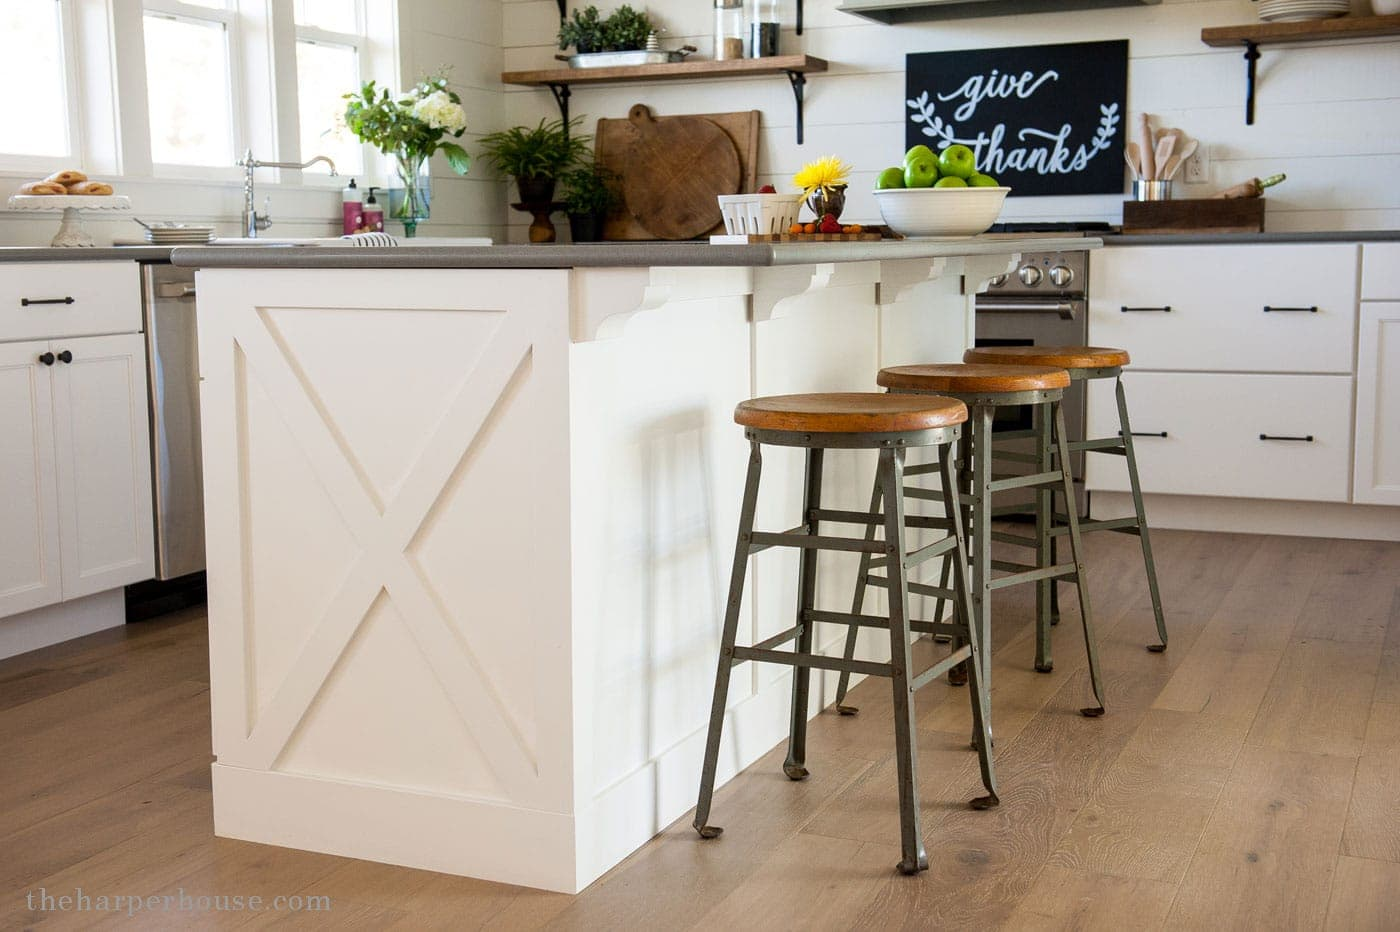 our farmhouse kitchen reveal | The Harper House on shaker traditional kitchen, shaker contemporary kitchen, shaker barn, shaker transitional kitchen, shaker bedroom, shaker living room, shaker cottage kitchen, shaker homes, shaker dining room,